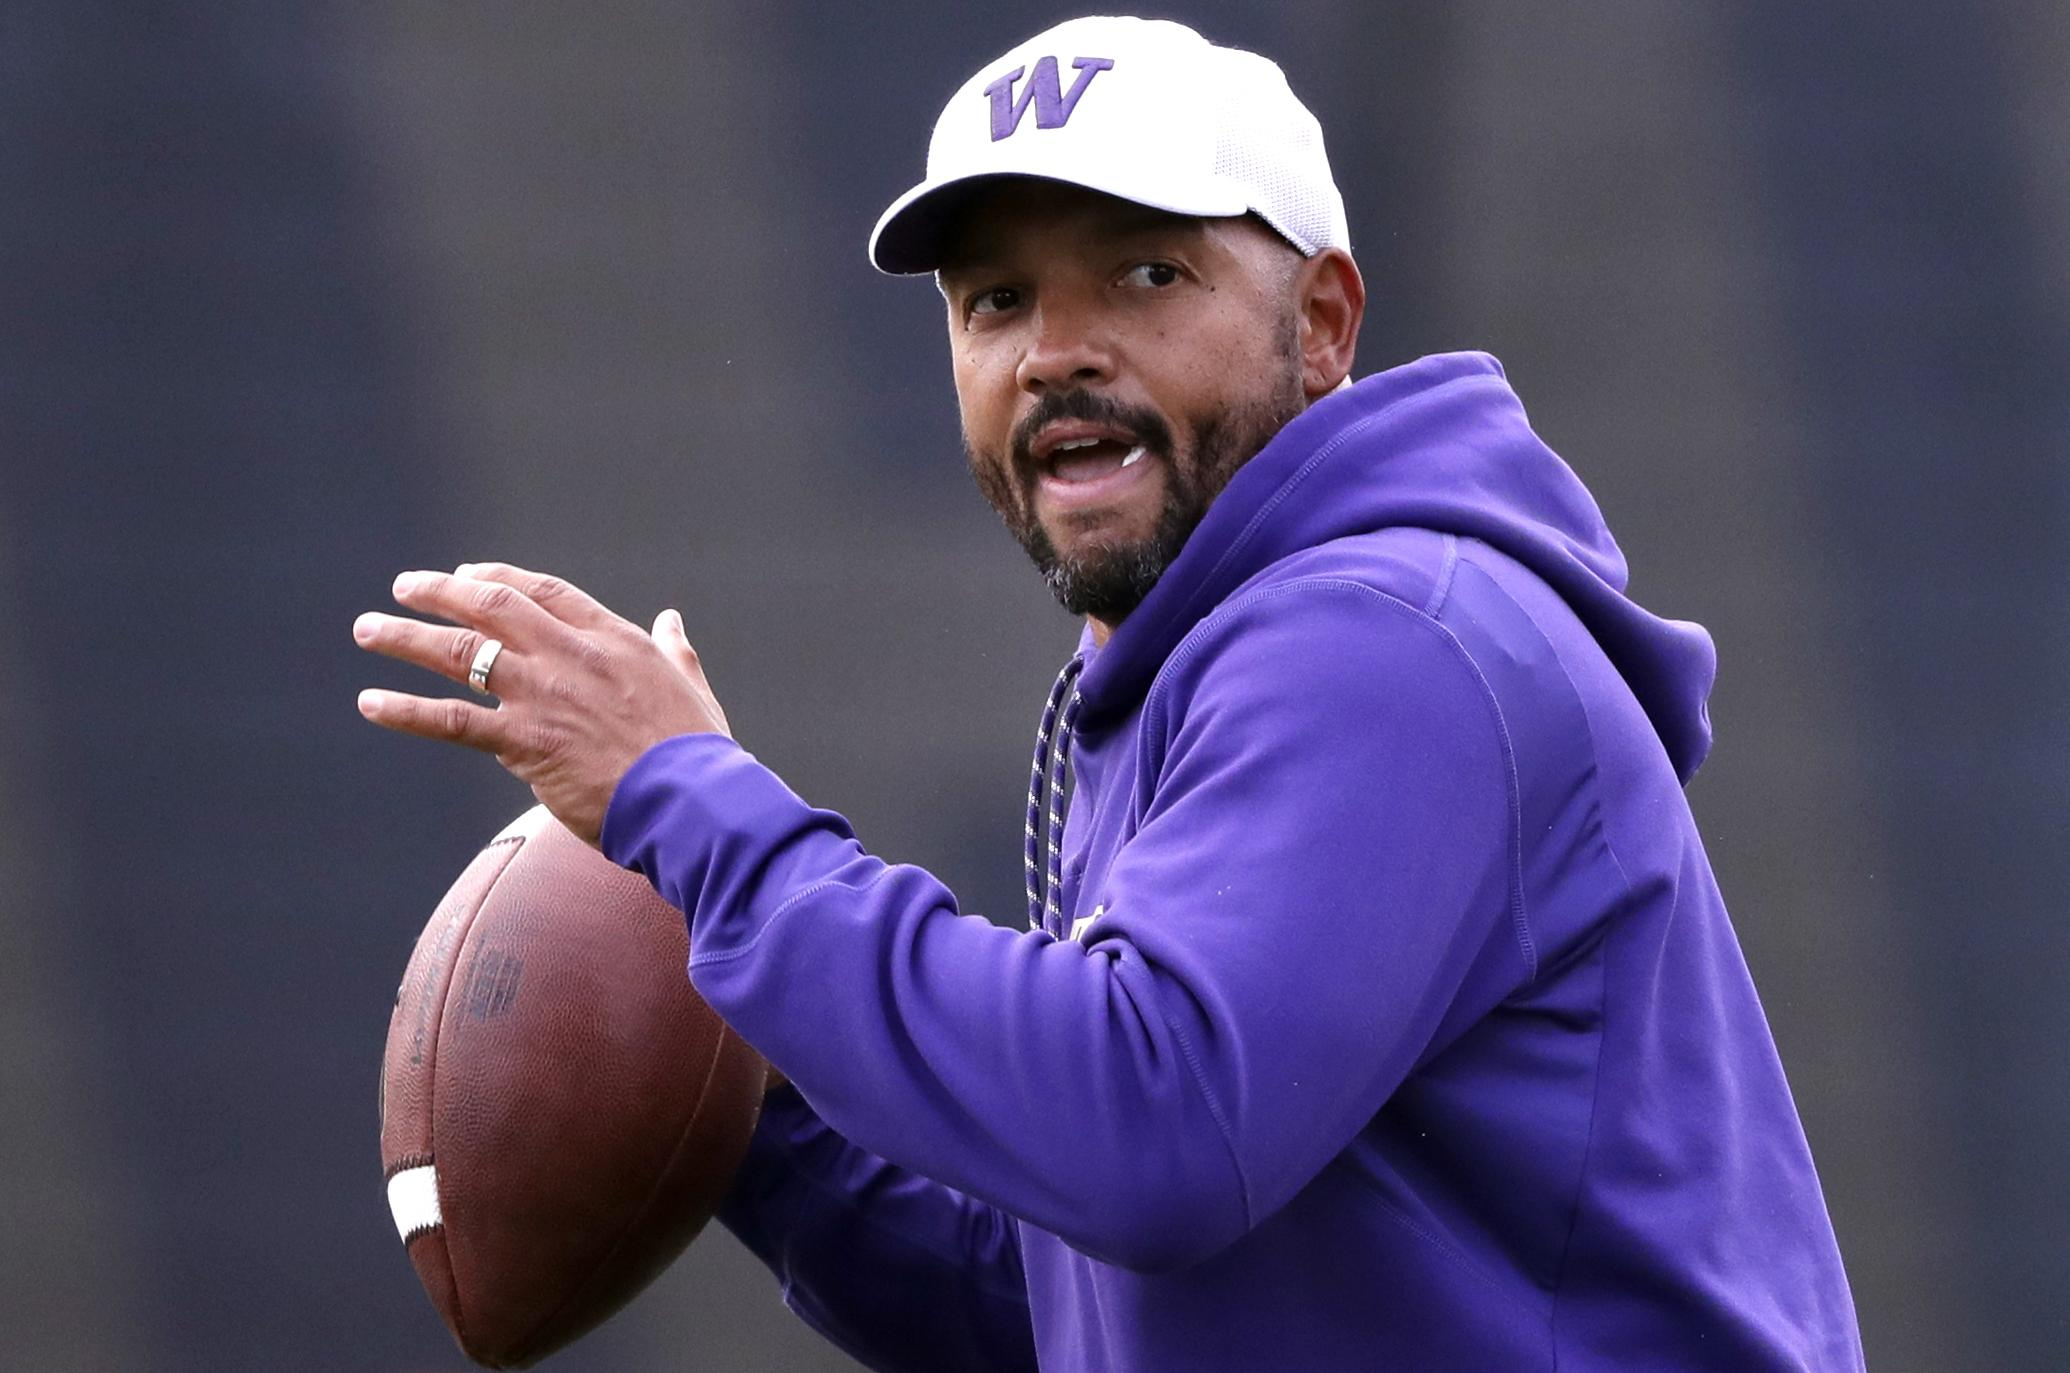 Chris Petersen steps down at Washington, Jimmy Lake named head coach